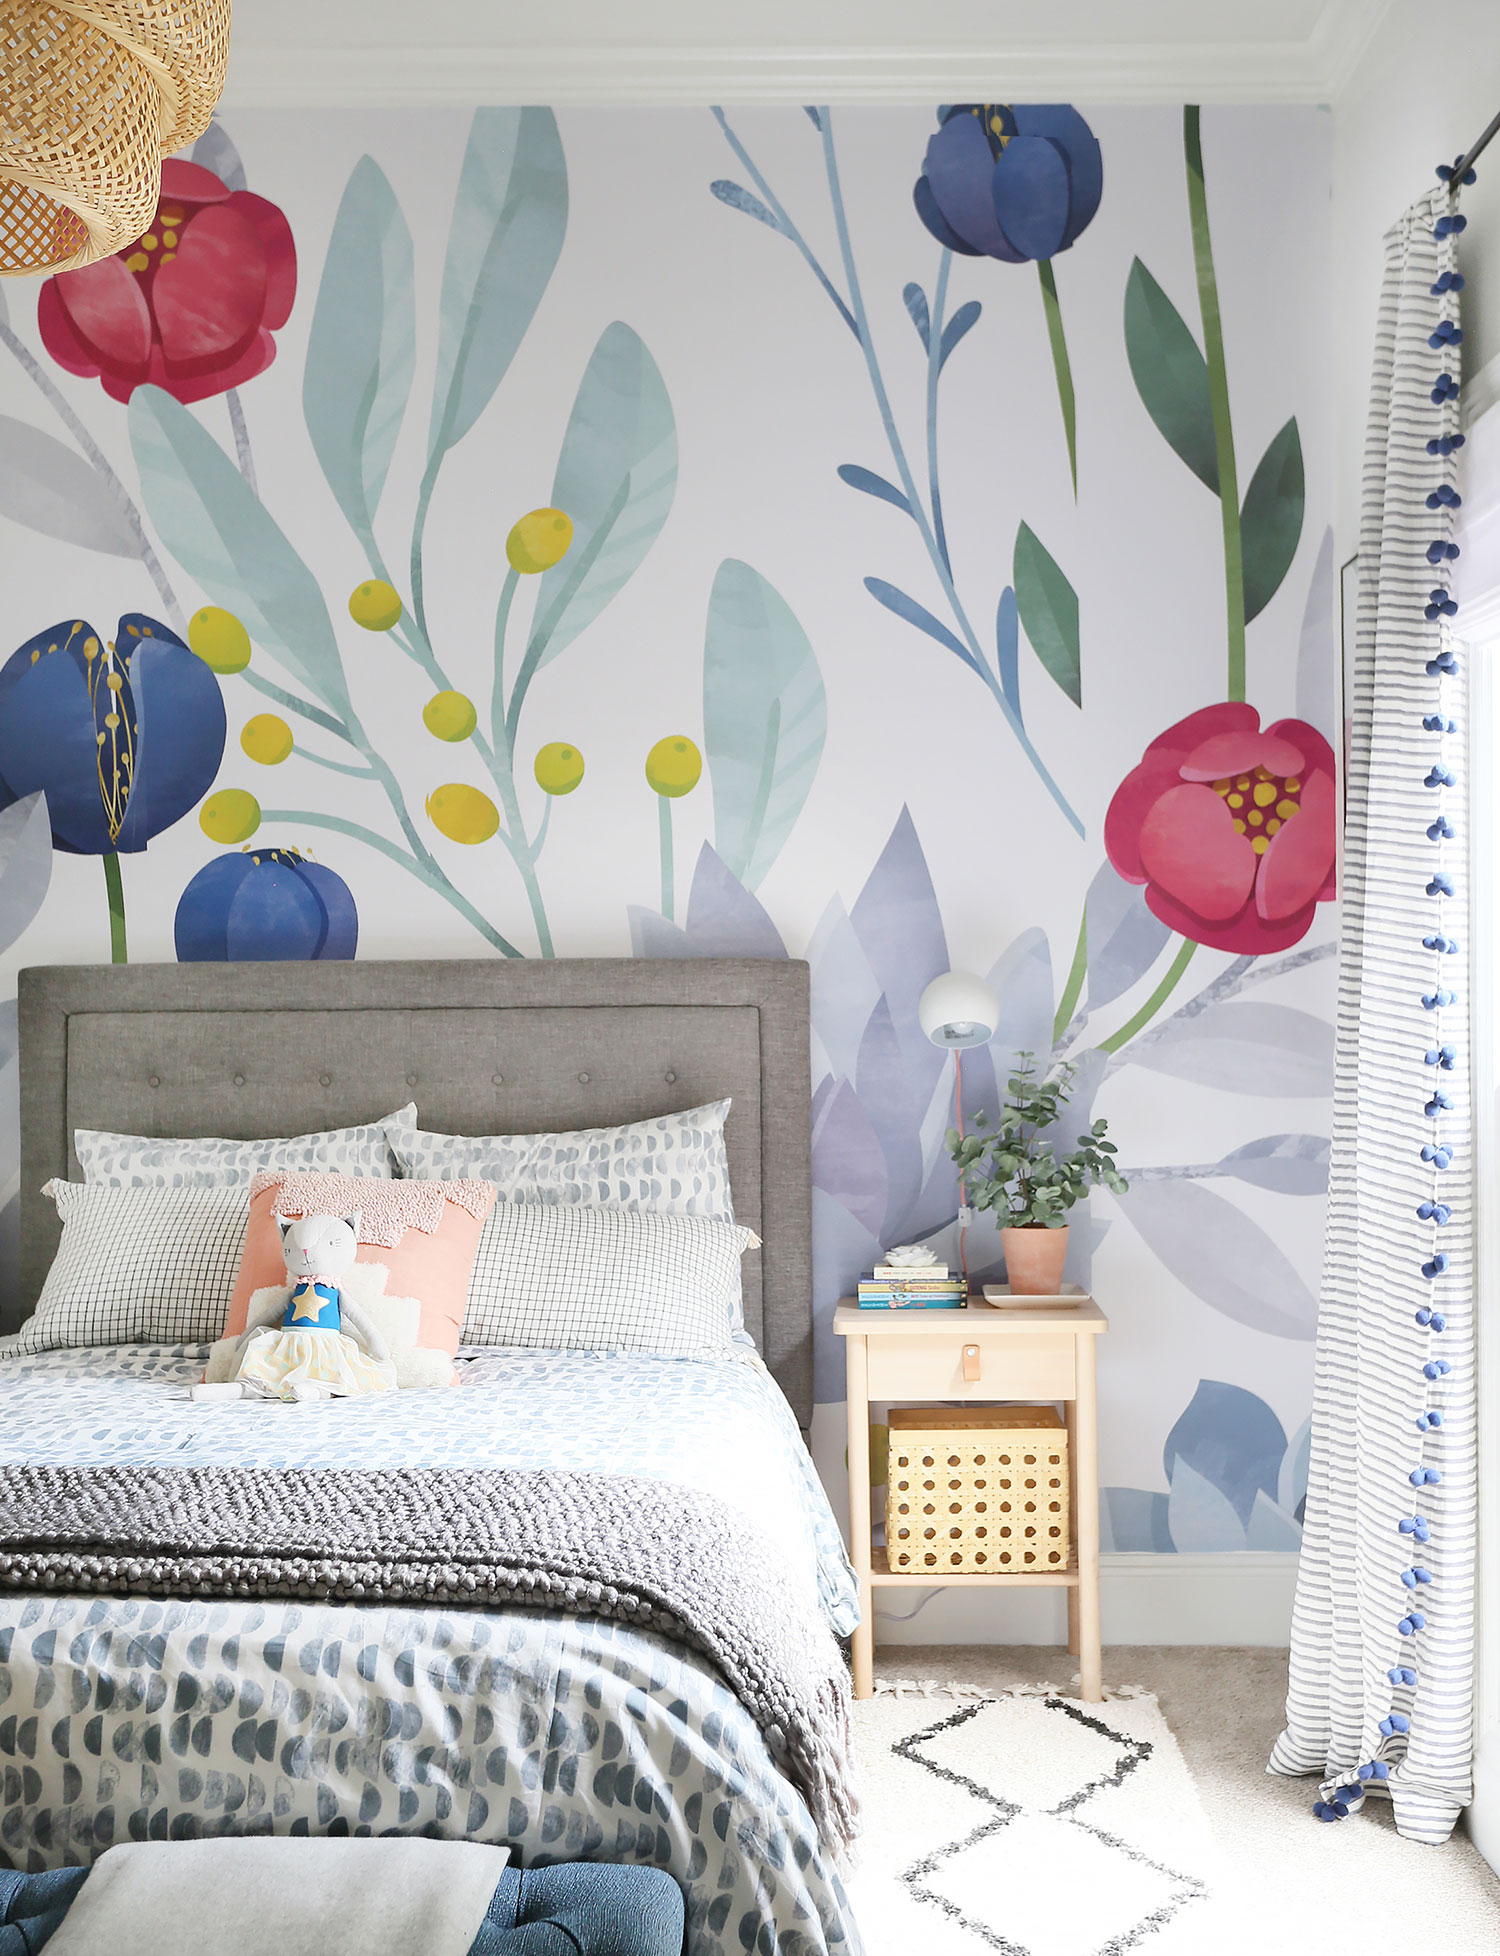 A HAPPY & BOHO KID'S ROOM